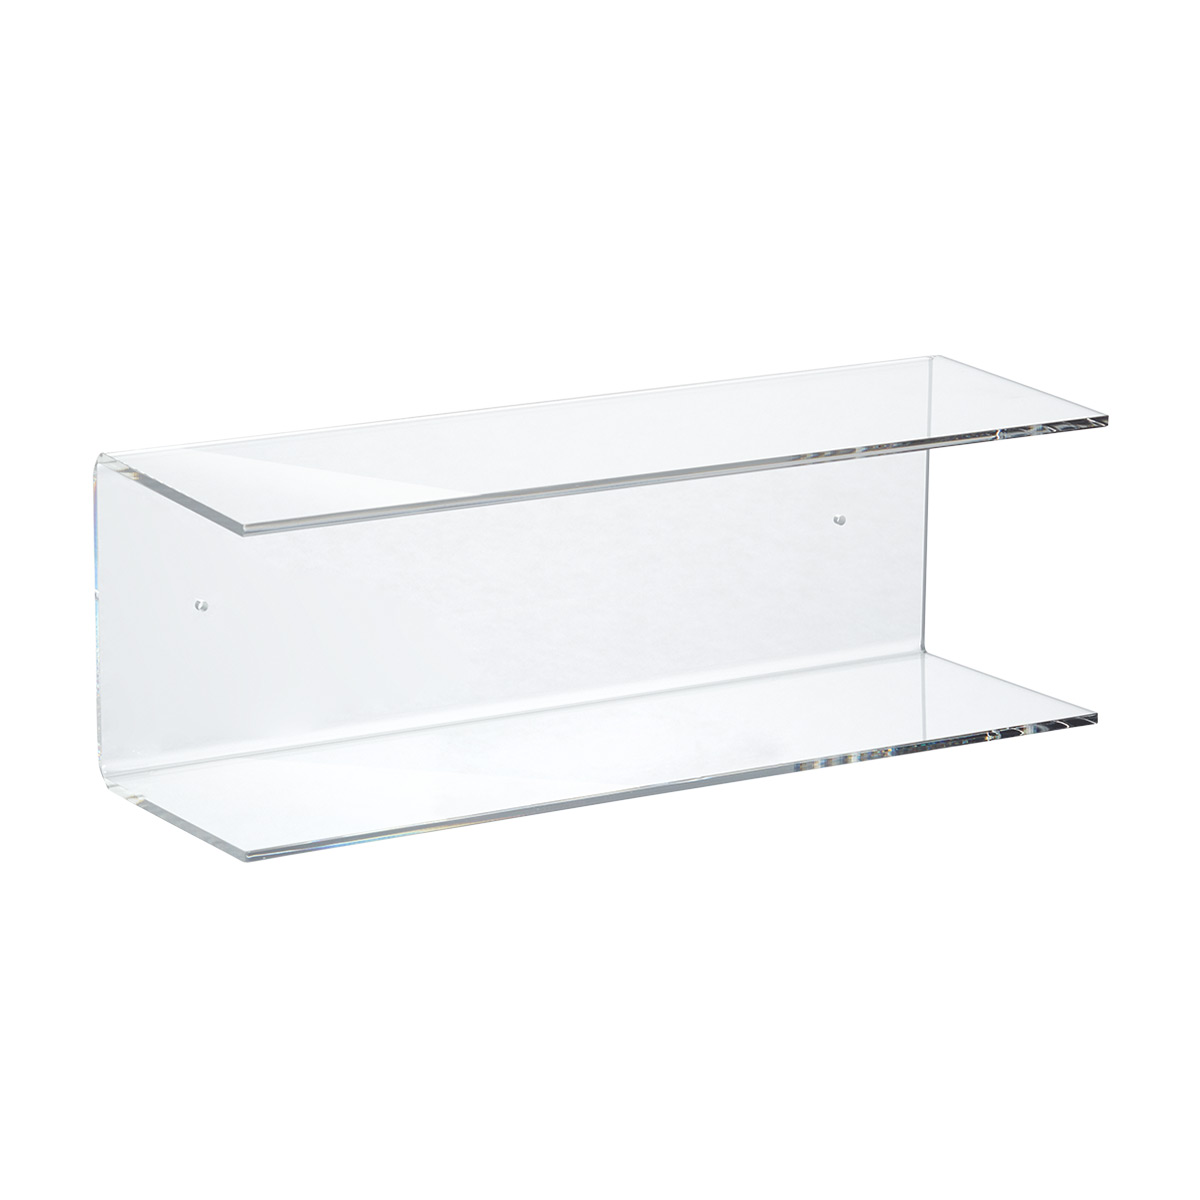 Double Acrylic Wall Shelf